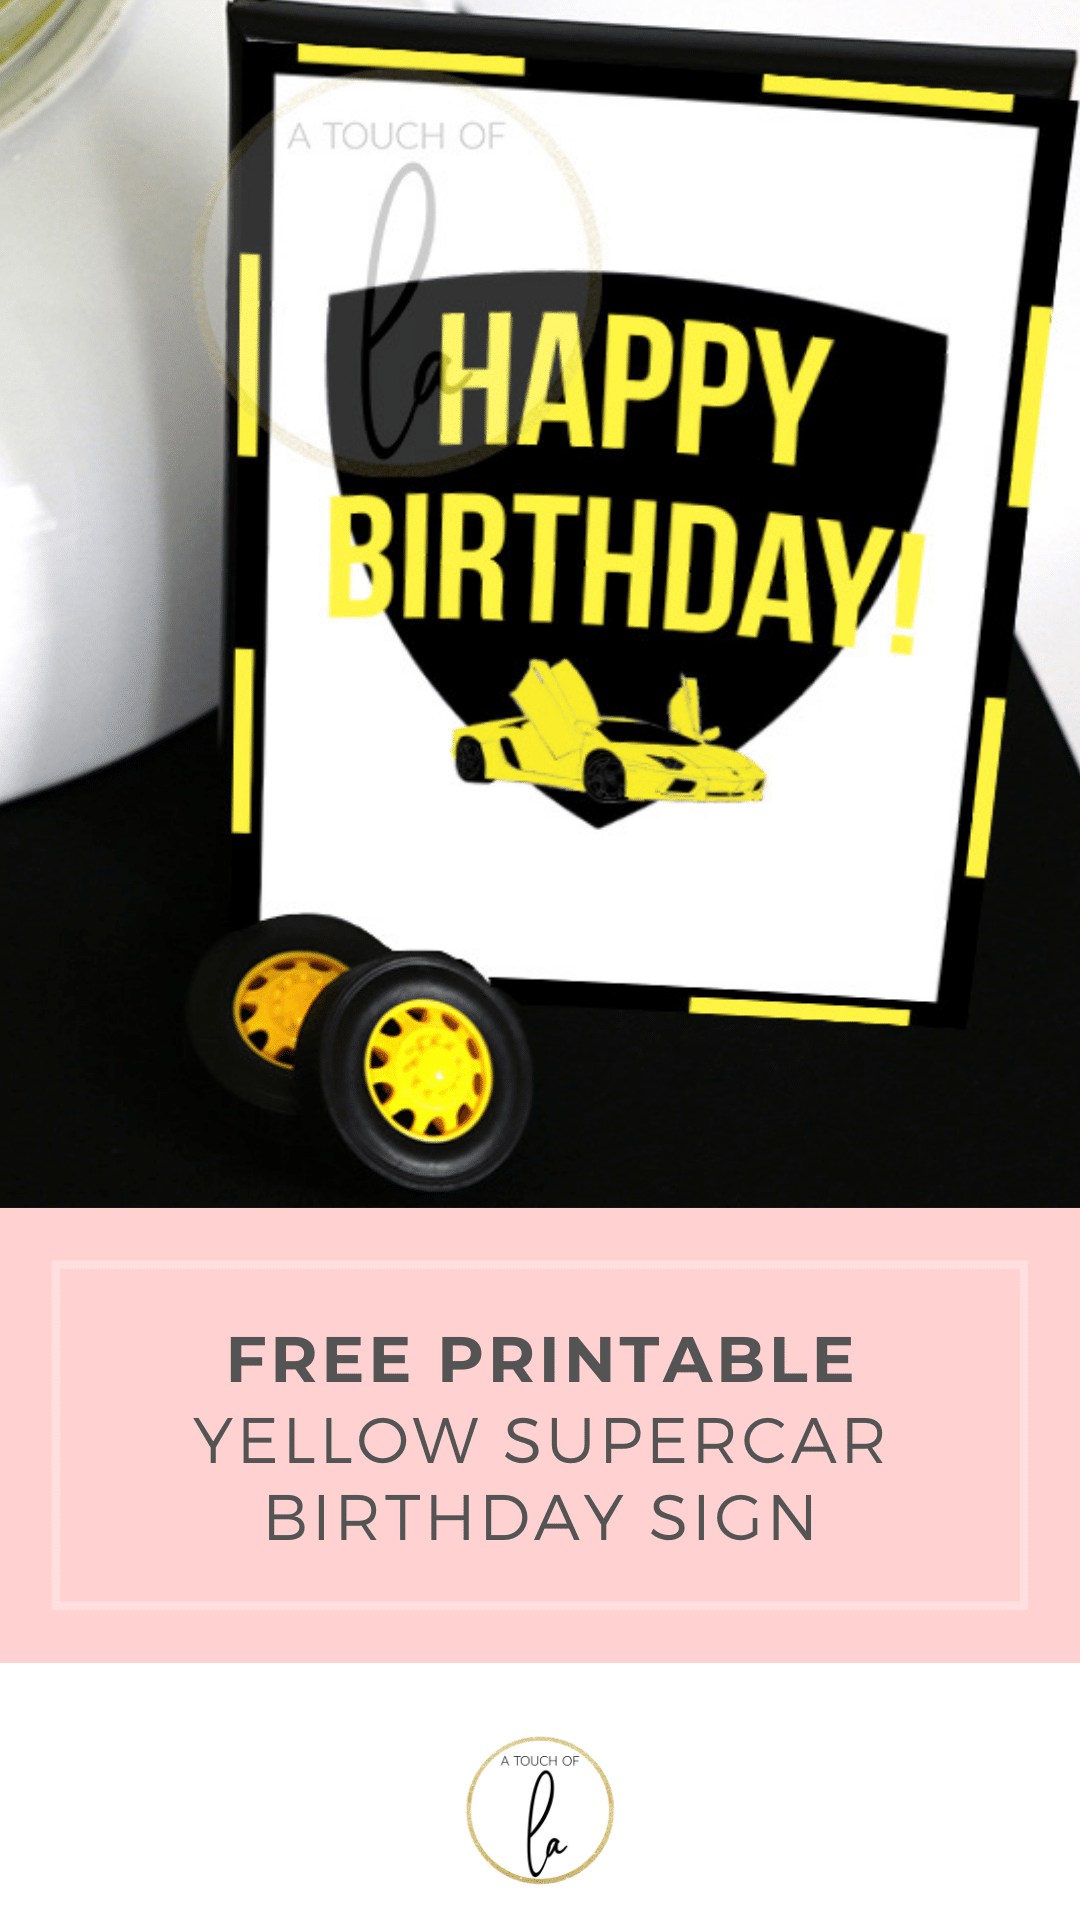 Free Yellow Supercar Printable Happy Birthday Sign